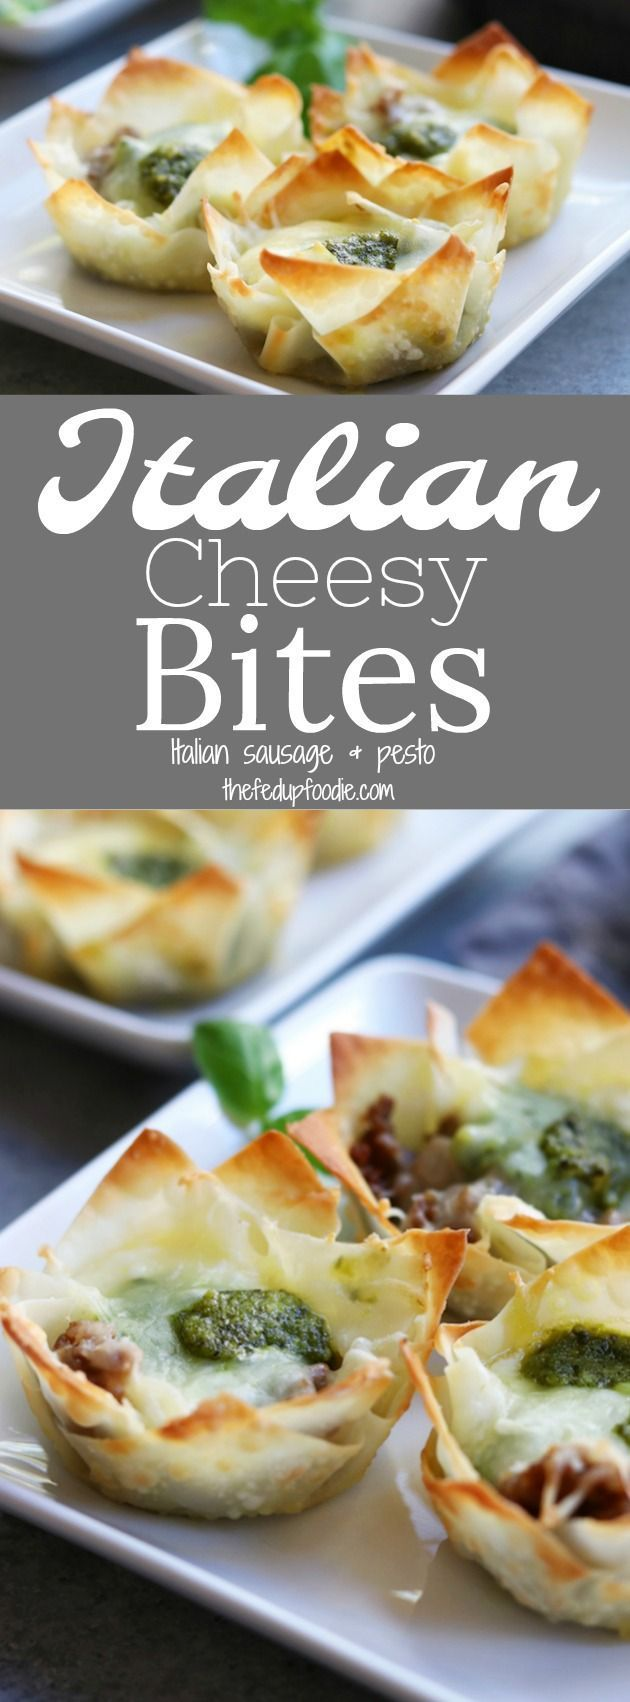 Crispy, cheesy and bursting with flavors of Italian sausage and pesto, these Italian Cheesy Bites recipe is a wonderful appetizer for your Holiday get togethers. https://www.thefedupfoodie.com